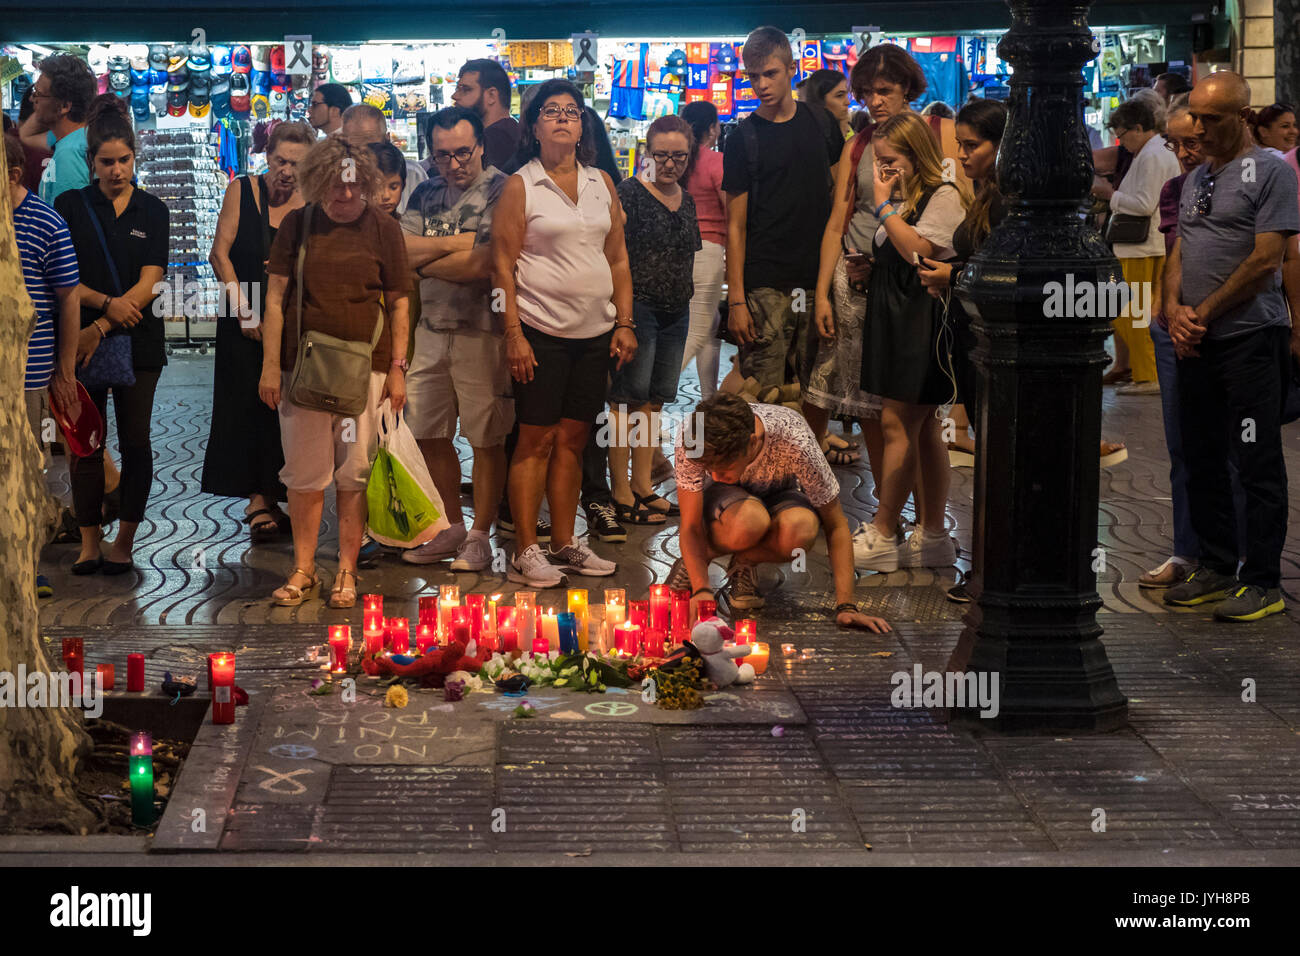 Barcelona, Spain. 19th Aug, 2017. On 19 August 2017 the city of Barcelona suffered the ISIS terrorist attack, with Stock Photo